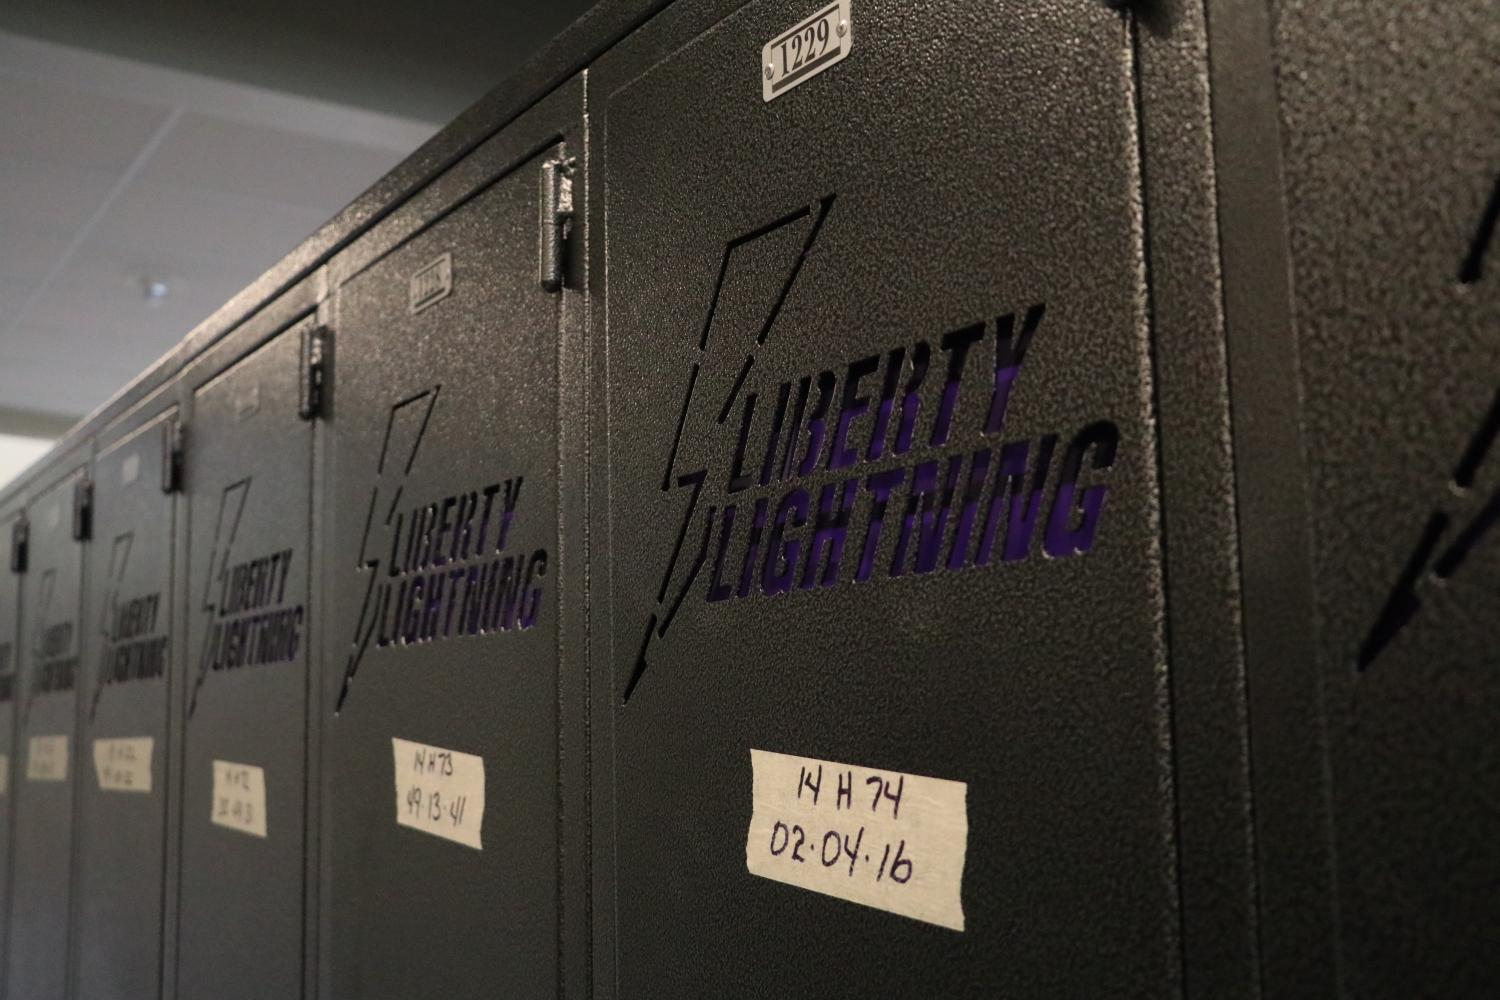 Lockers engraved with